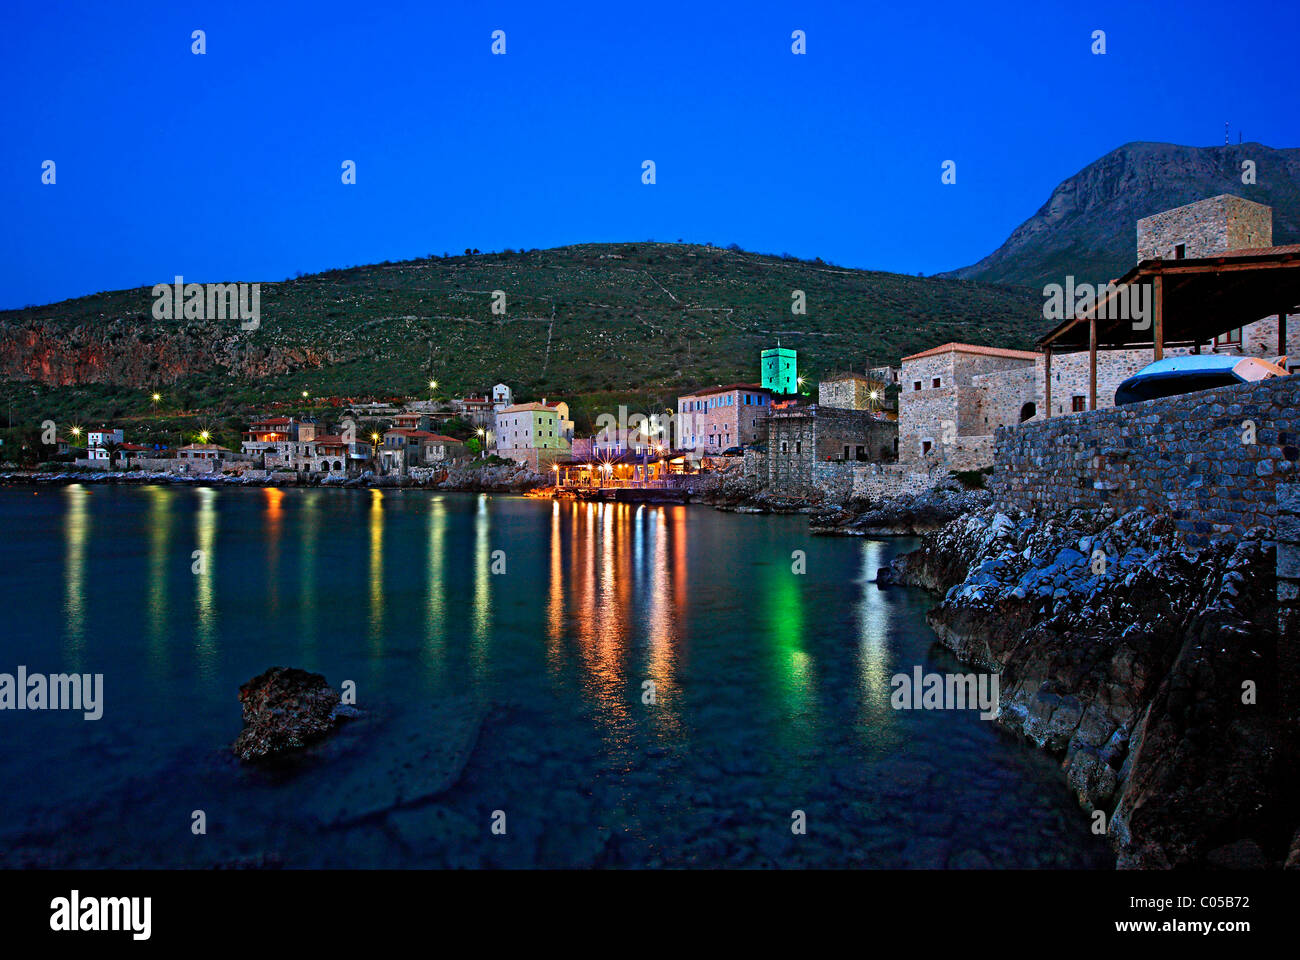 Limeni, One Of The Most Beautiful Seaside Villages Of Mani Region